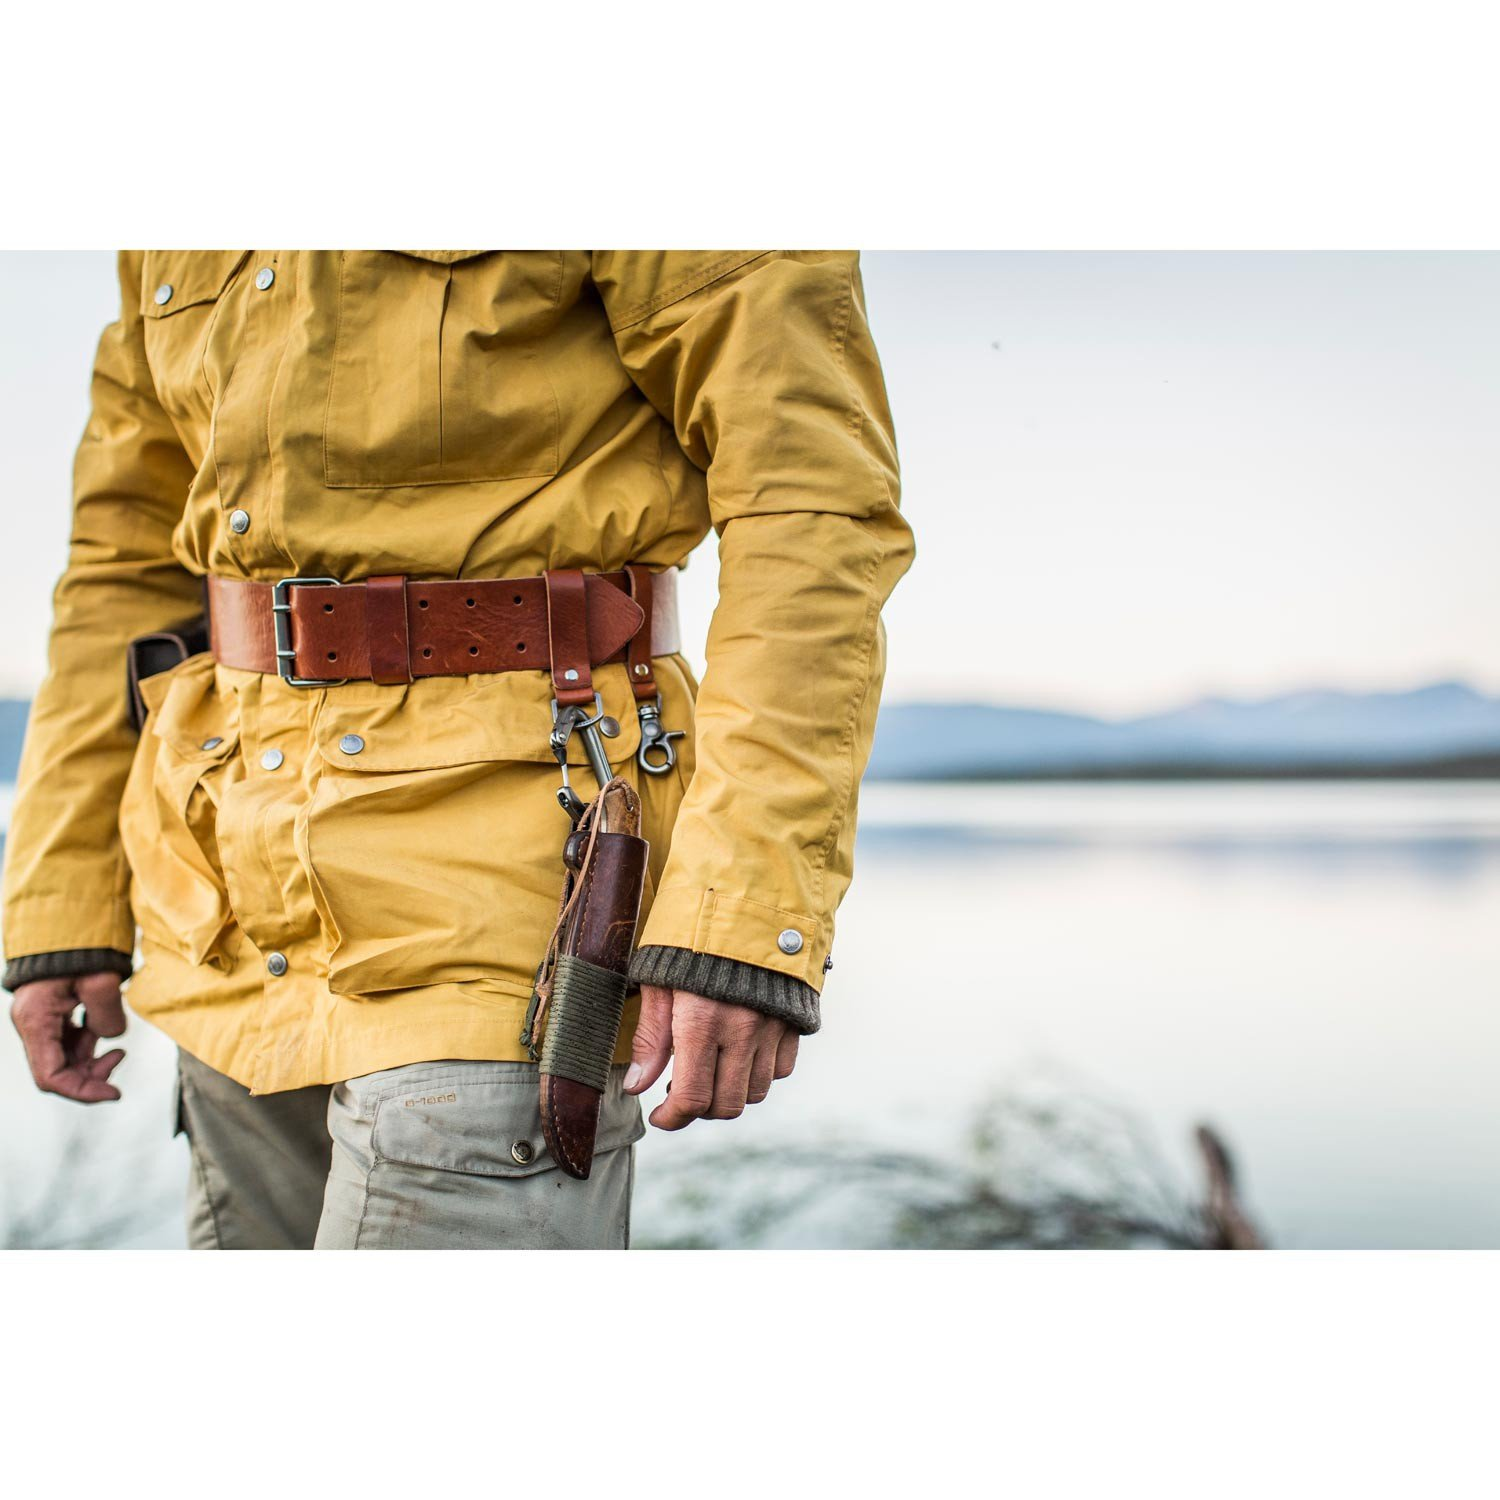 ac16ba6045c1b Fjällräven Equipment Belt Leather Cognac